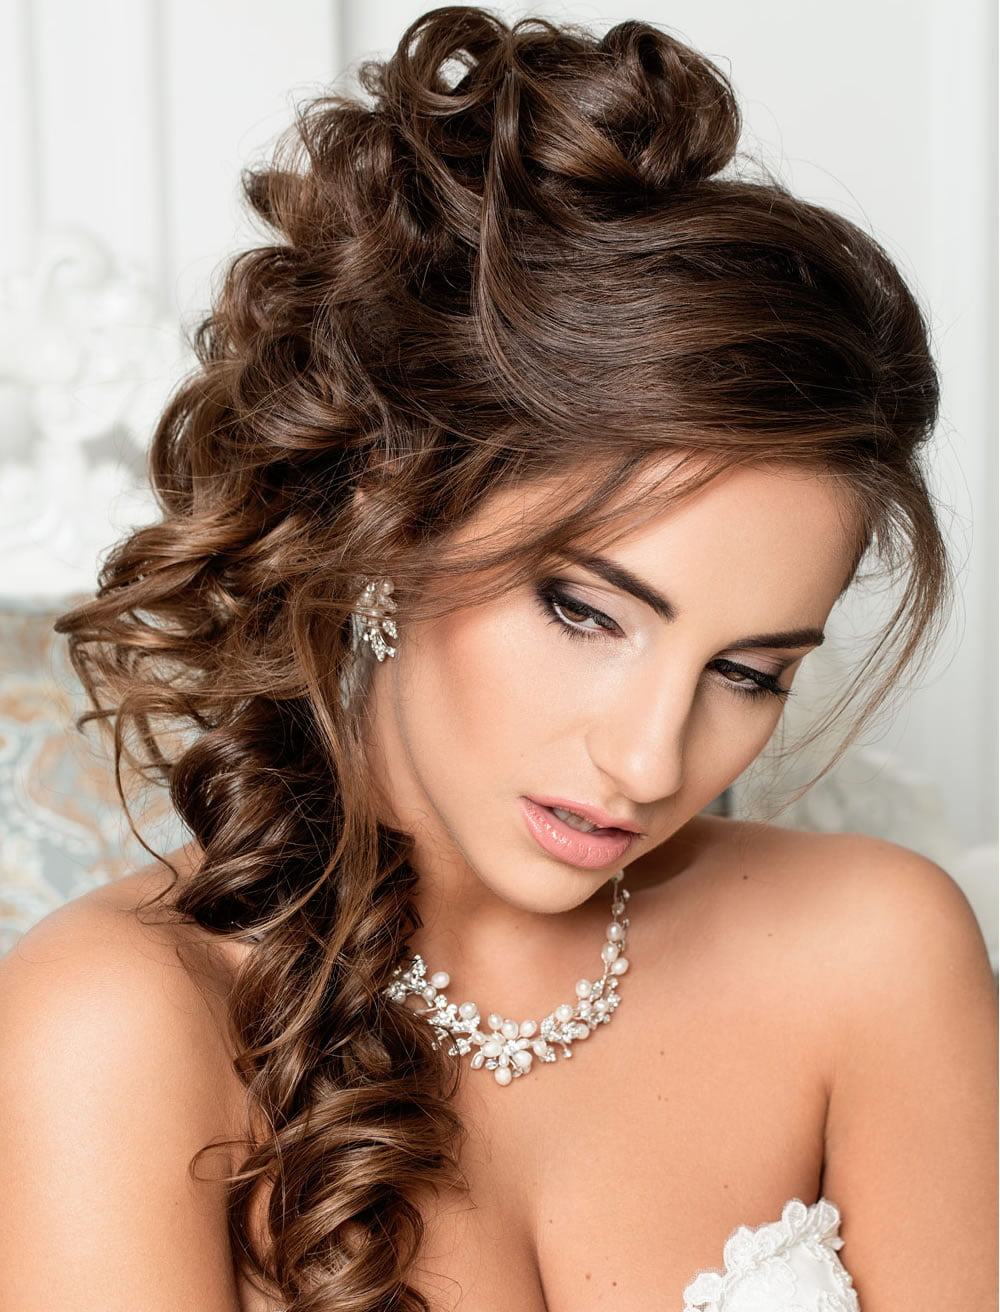 very stylish wedding hairstyles for long hair 2018 2019 hairstyles. Black Bedroom Furniture Sets. Home Design Ideas